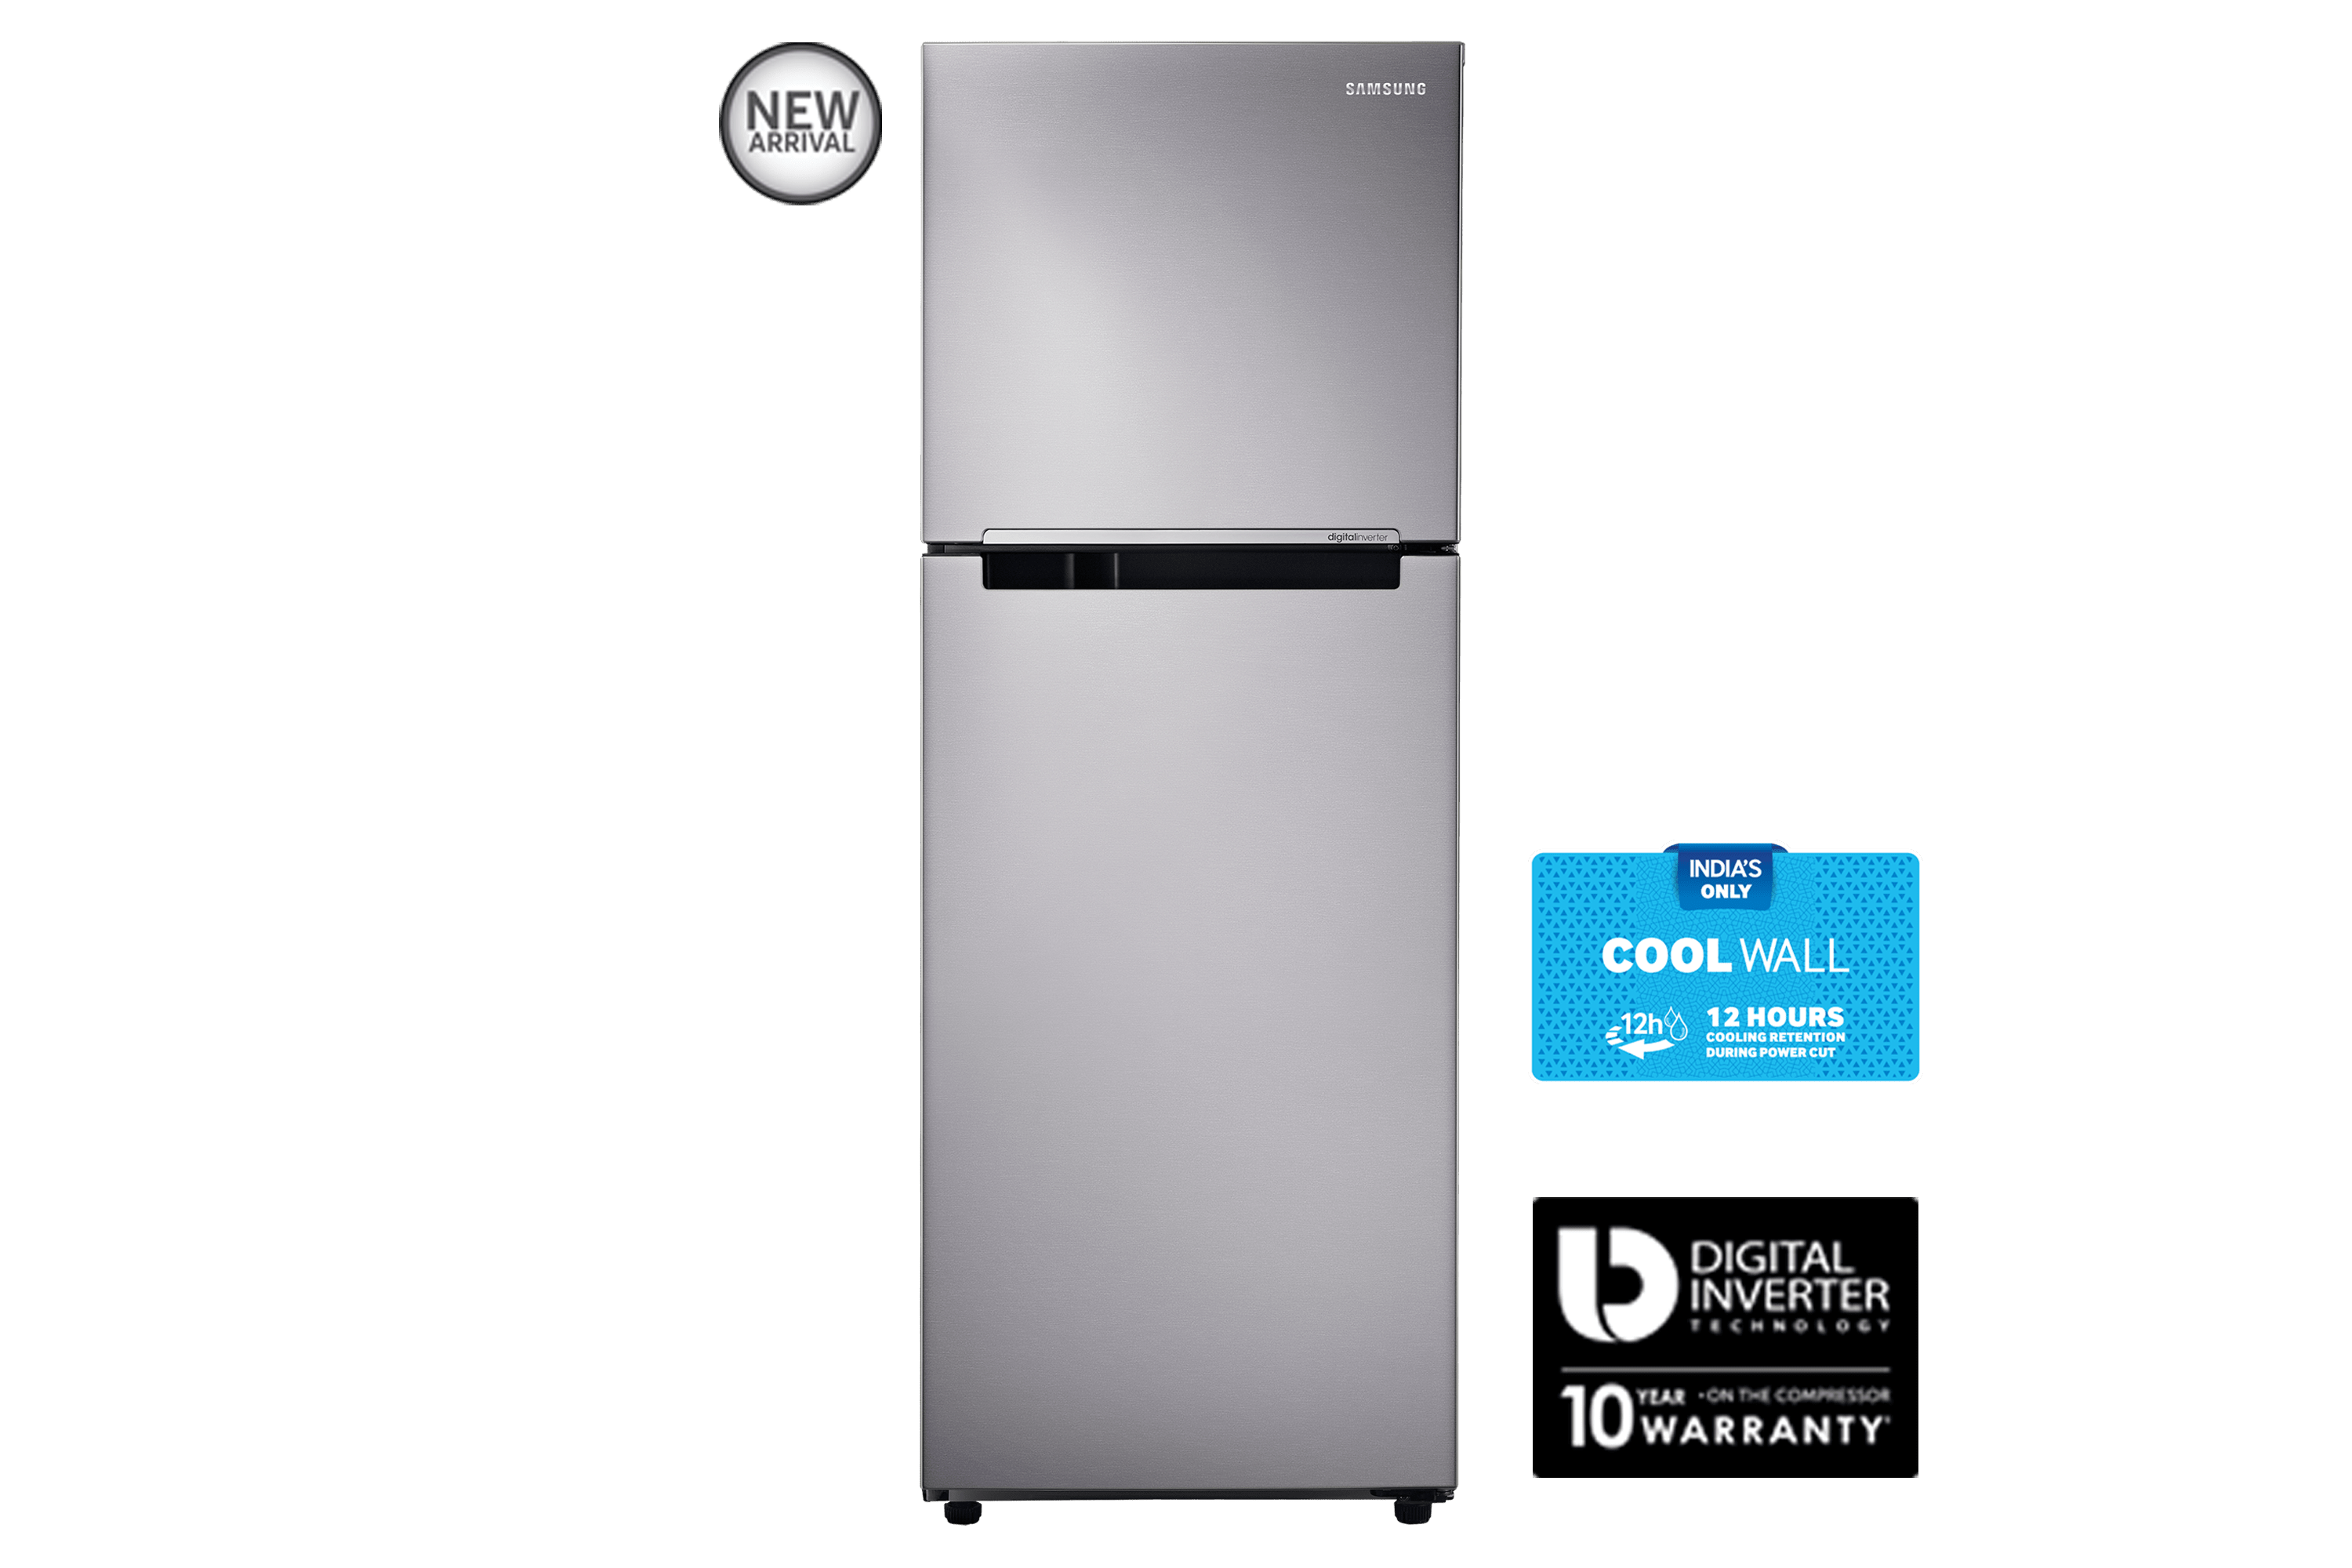 New Refrigerator Price Samsung Refrigerator Rt28k3082s8 Hl Price Reviews Specs Samsung India